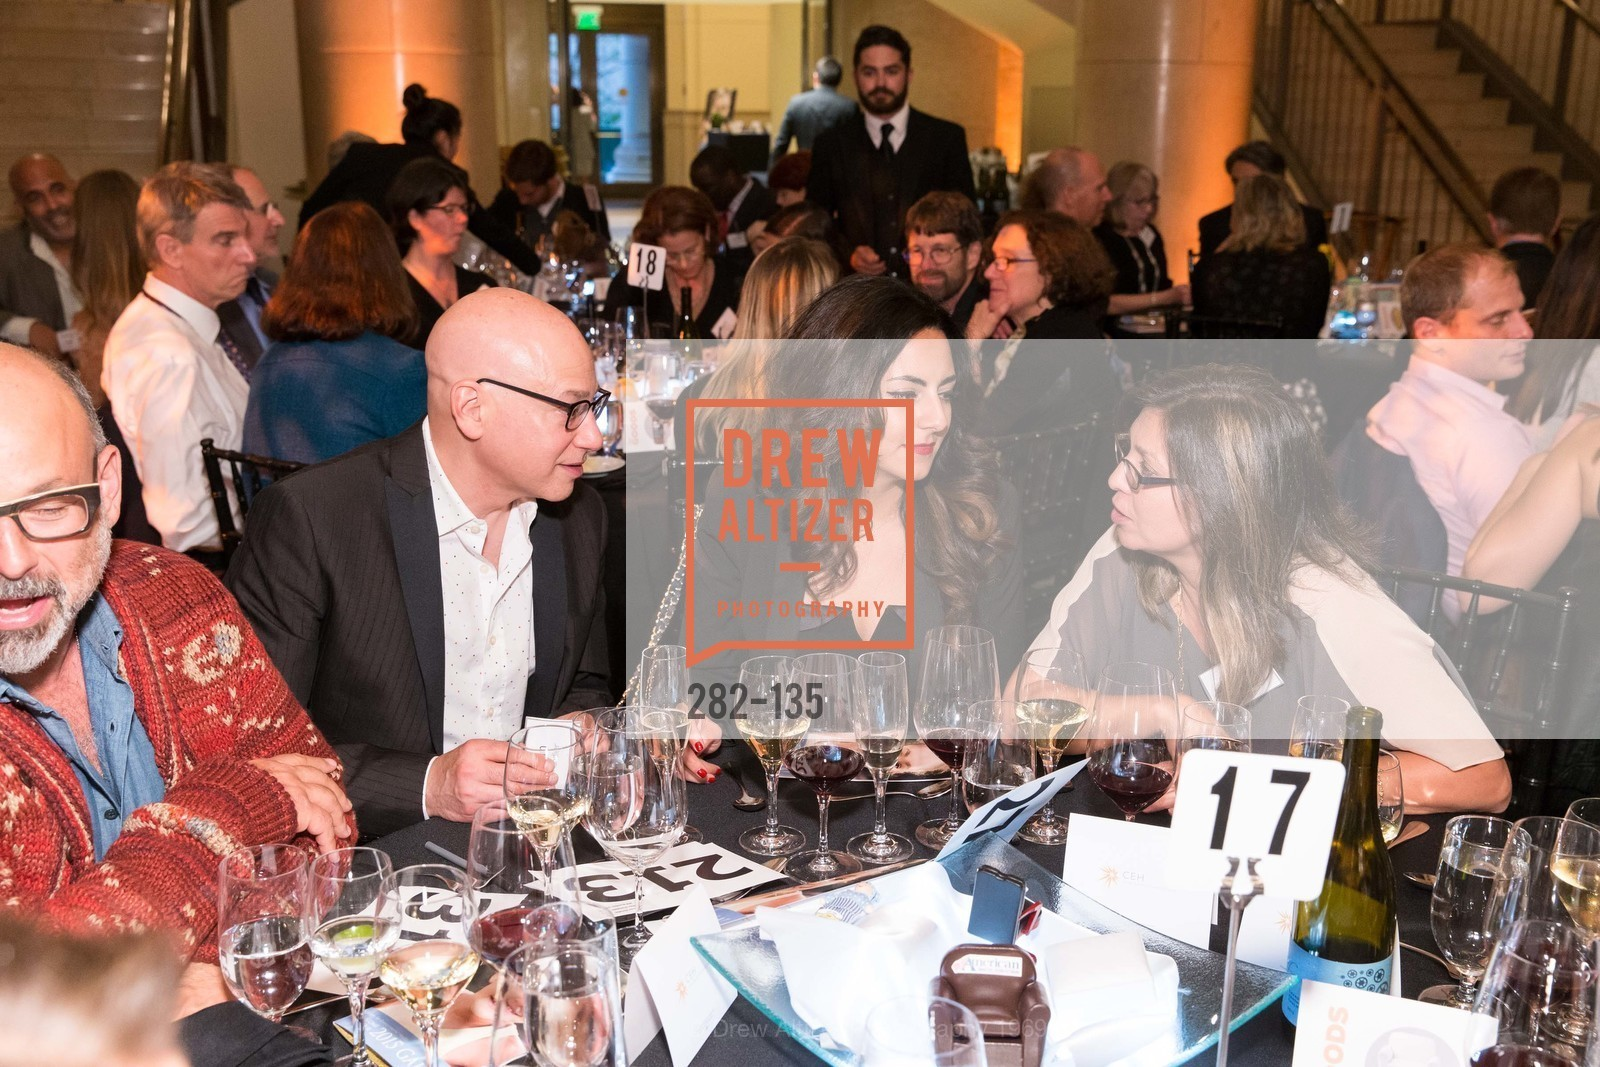 Evan Handler, Mona Mohammedi, Center for Environmental Health  2015 Gala, Bently Reserve, May 27th, 2015,Drew Altizer, Drew Altizer Photography, full-service agency, private events, San Francisco photographer, photographer california